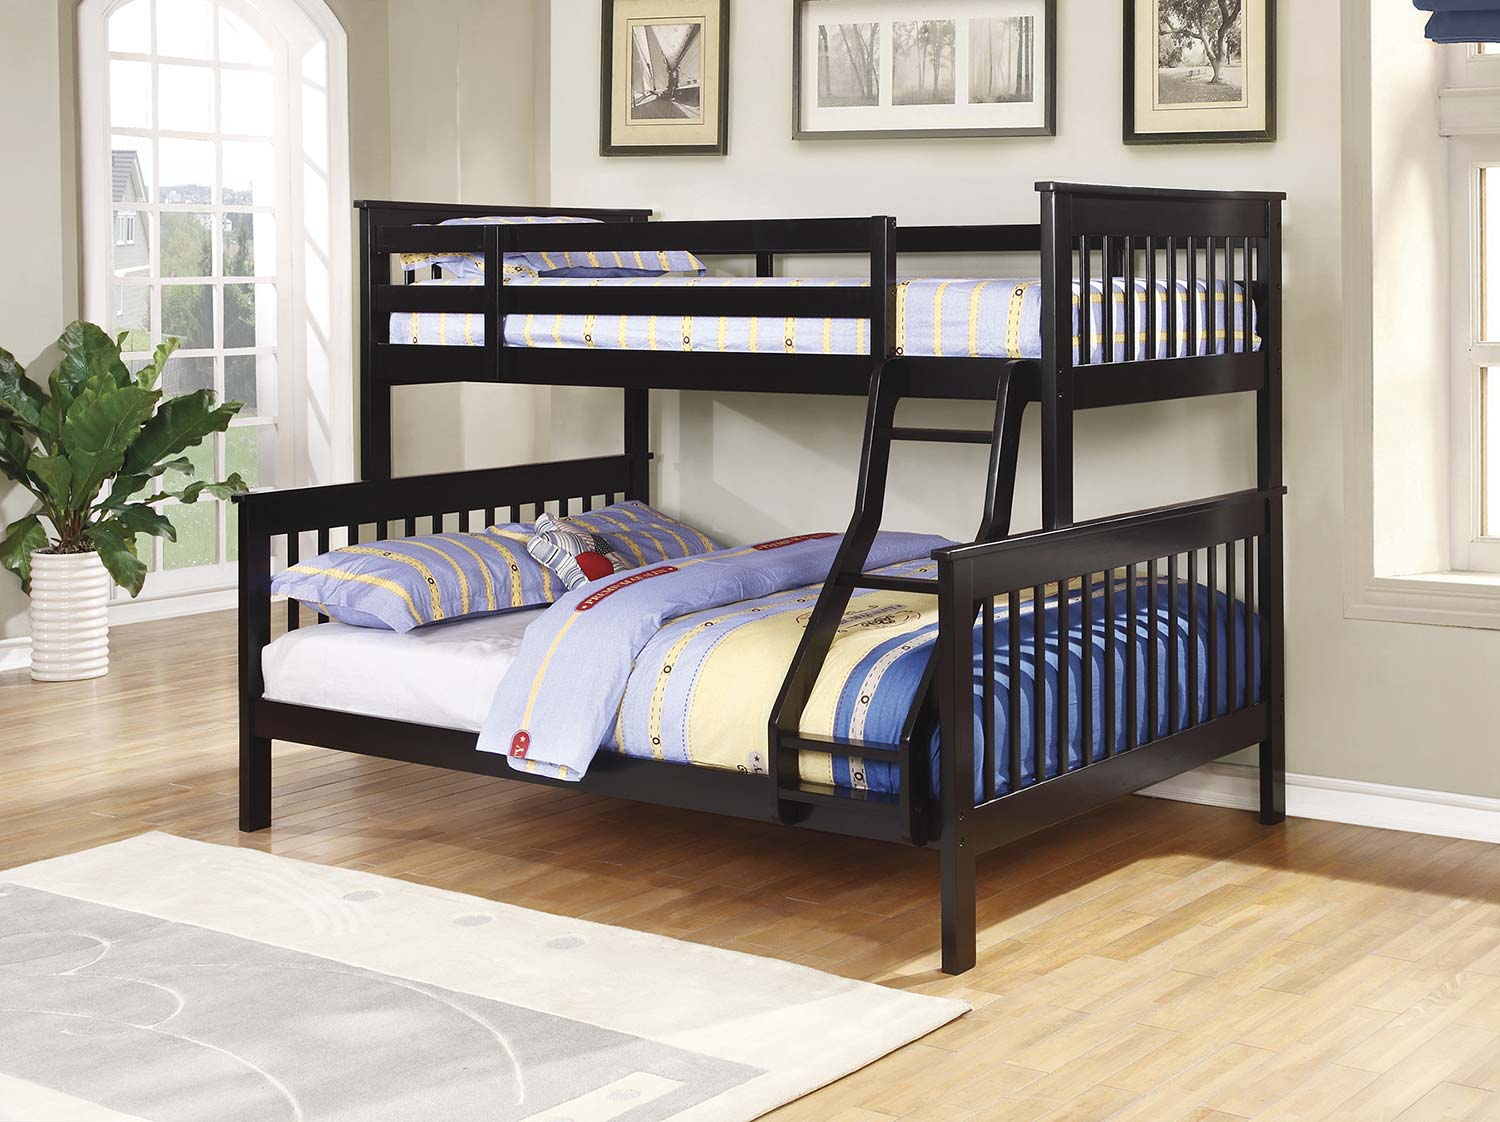 Coaster Chapman Twin/Full Size Bunk Bed - Black